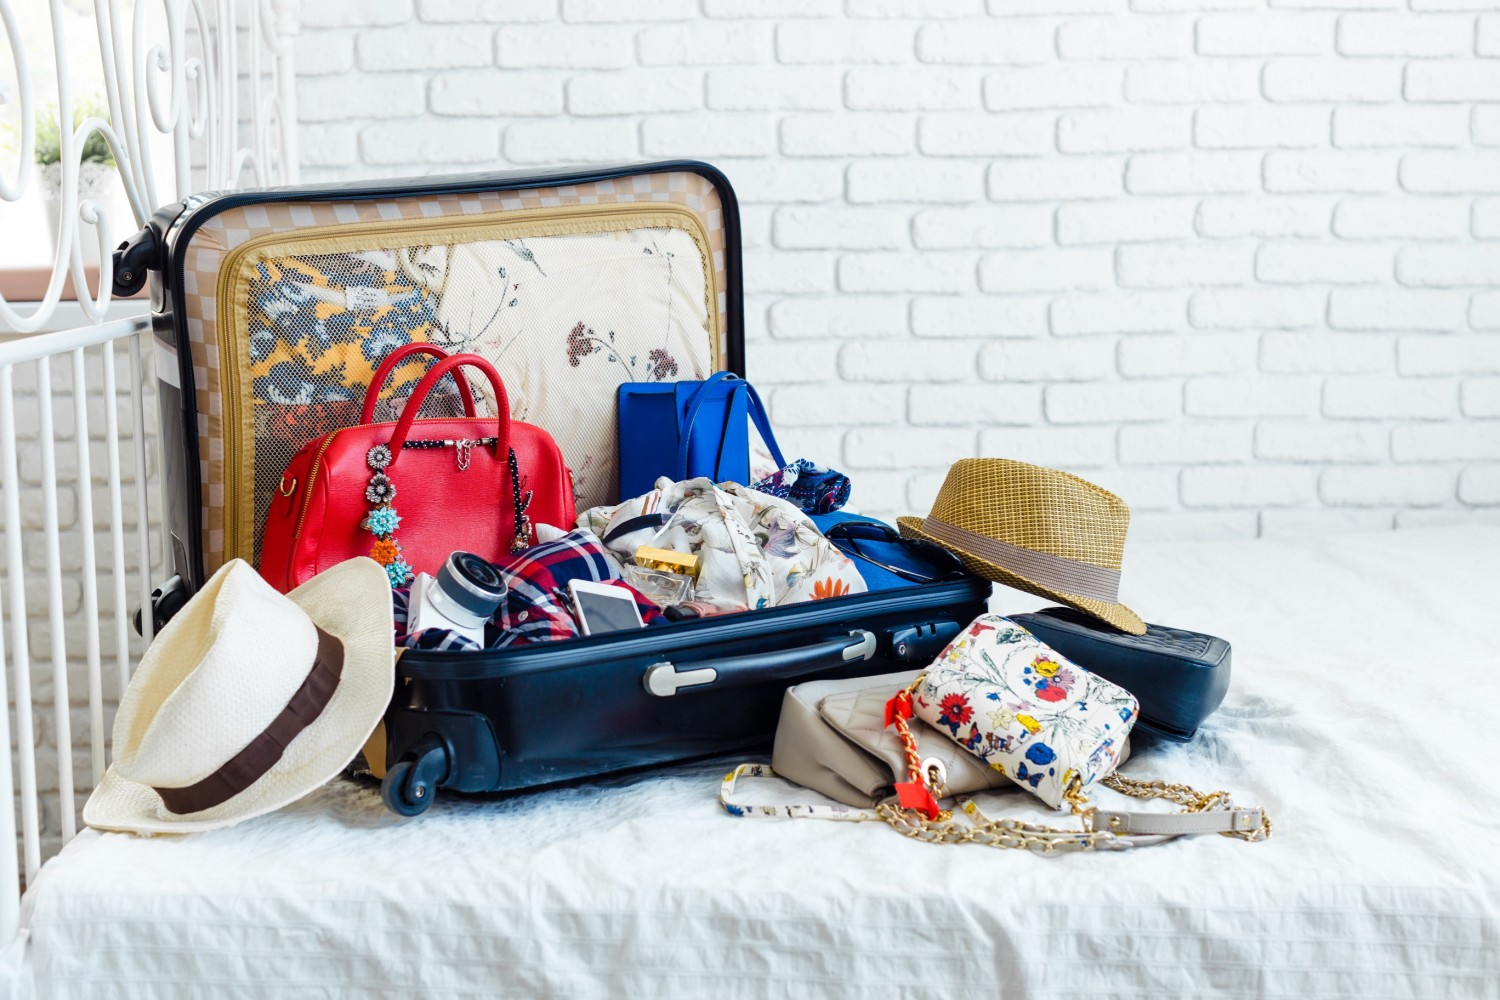 BM_Anticipation of voyage. Women's clothes and accessories in black suitcase_98688213